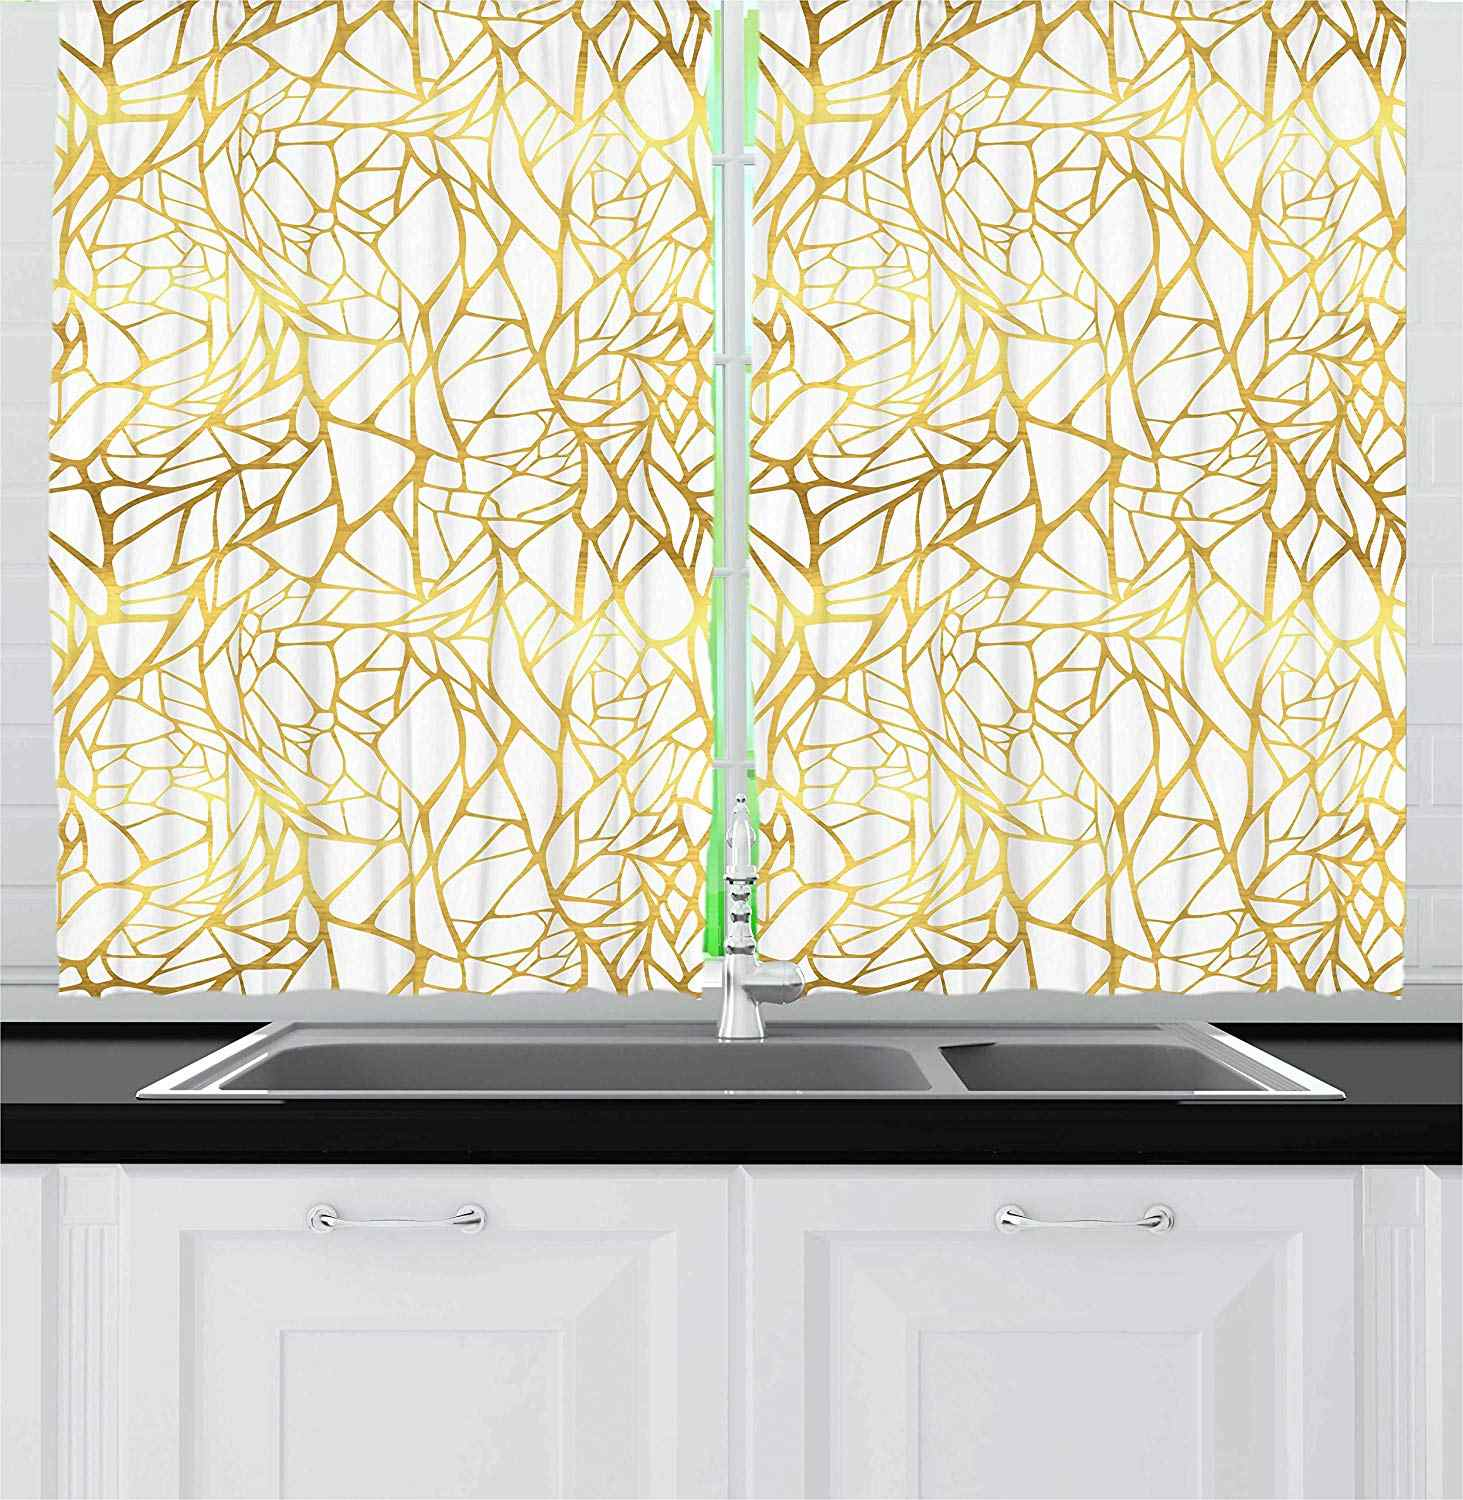 Image of: Contemporary Kitchen Curtains Abstract Ornament Exotic Animal Pattern Style Feminine Glamor Print Window Decor Panel Set Curtains Aliexpress